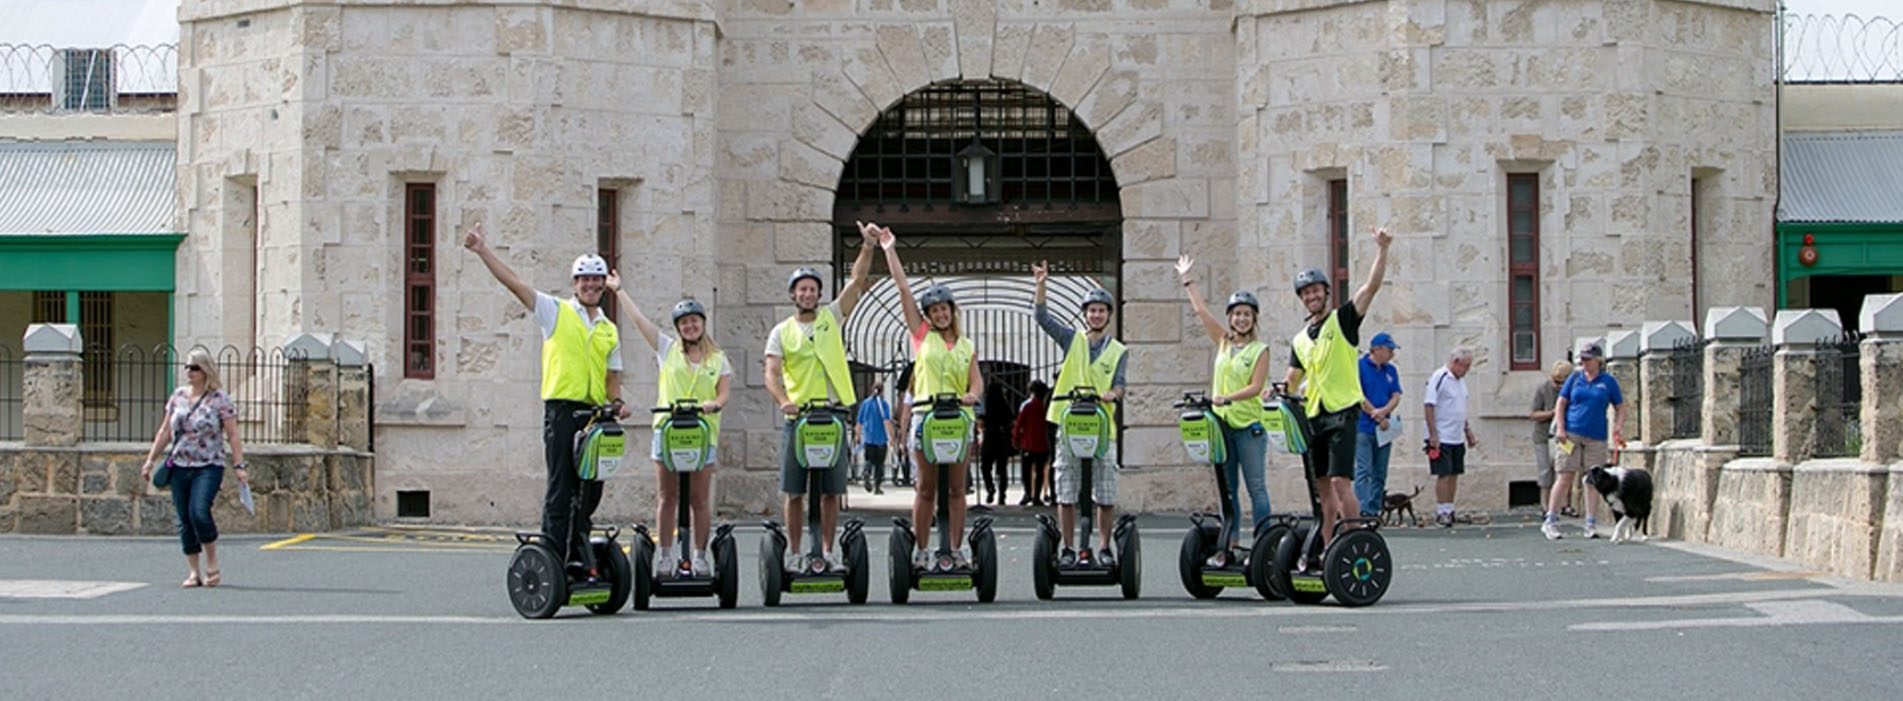 SEGWAY ABSOLUTE FREMANTLE TOURS prison photo